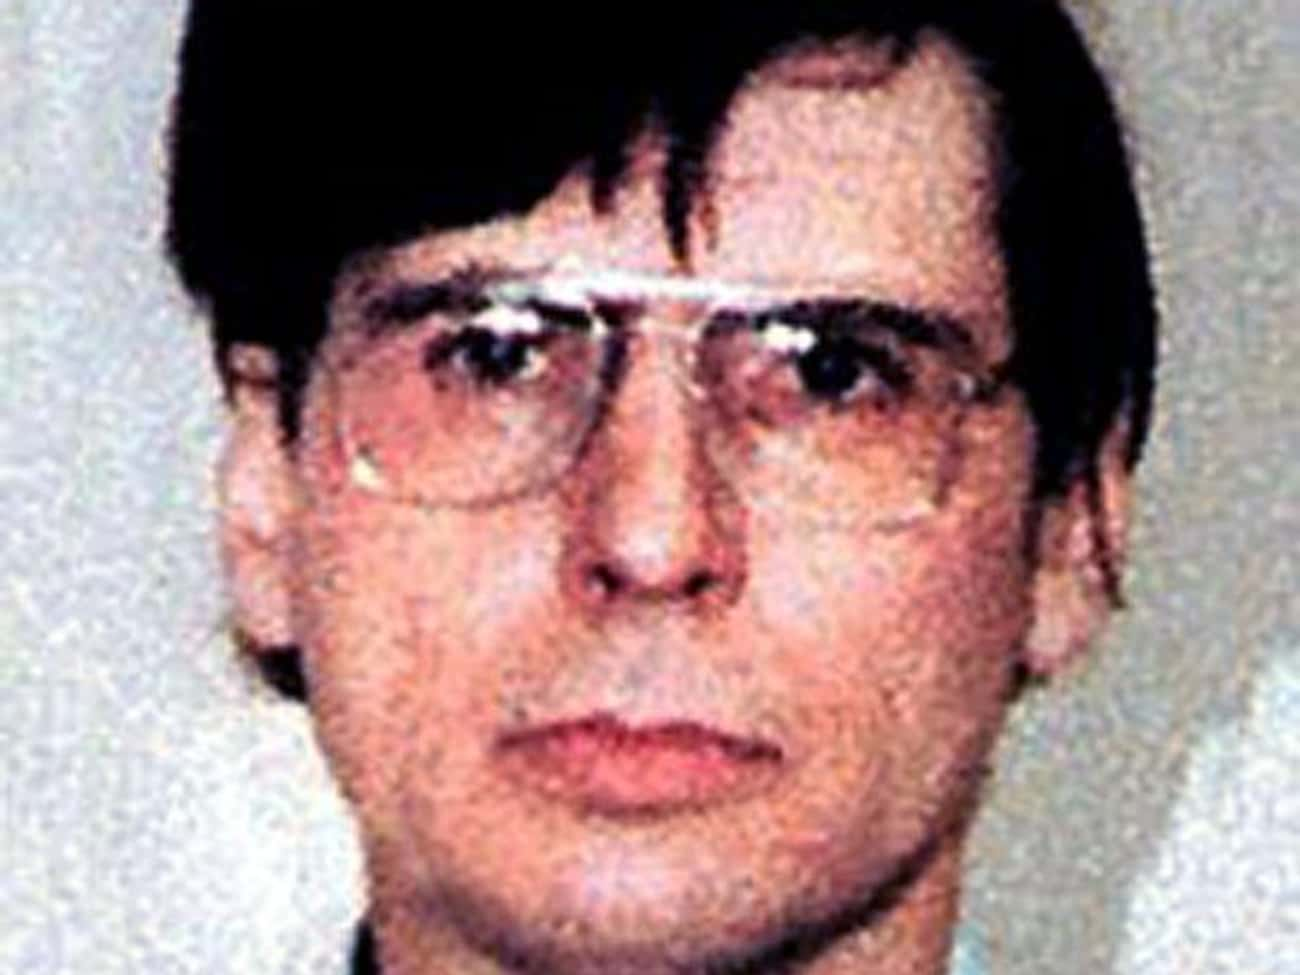 Dennis Nilsen Became Obsessed  is listed (or ranked) 1 on the list 12 Facts About The Strange Life Of 'The Kindly Killer' Dennis Nilsen